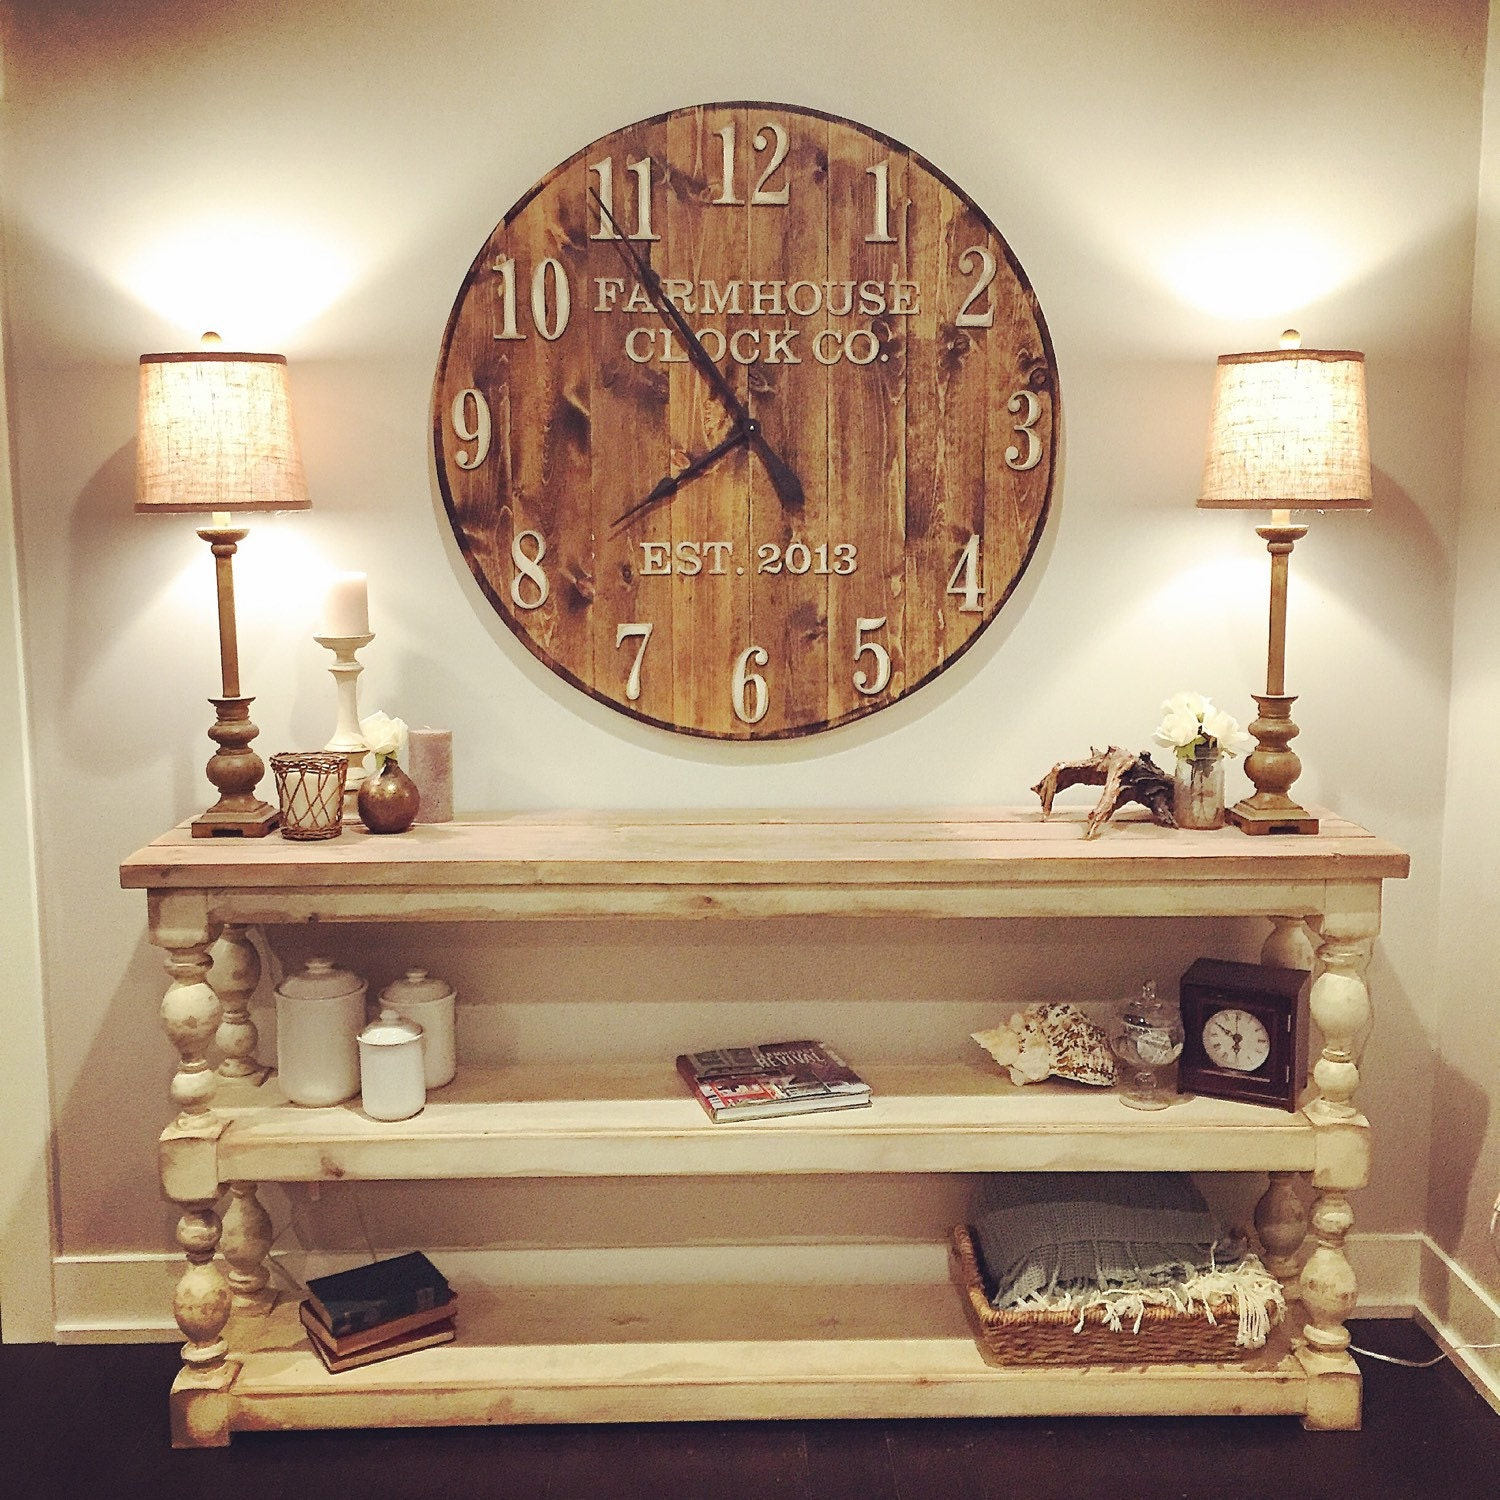 Farmhouse Clock Co Standard Numeral Wooden Wall Clock Etsy